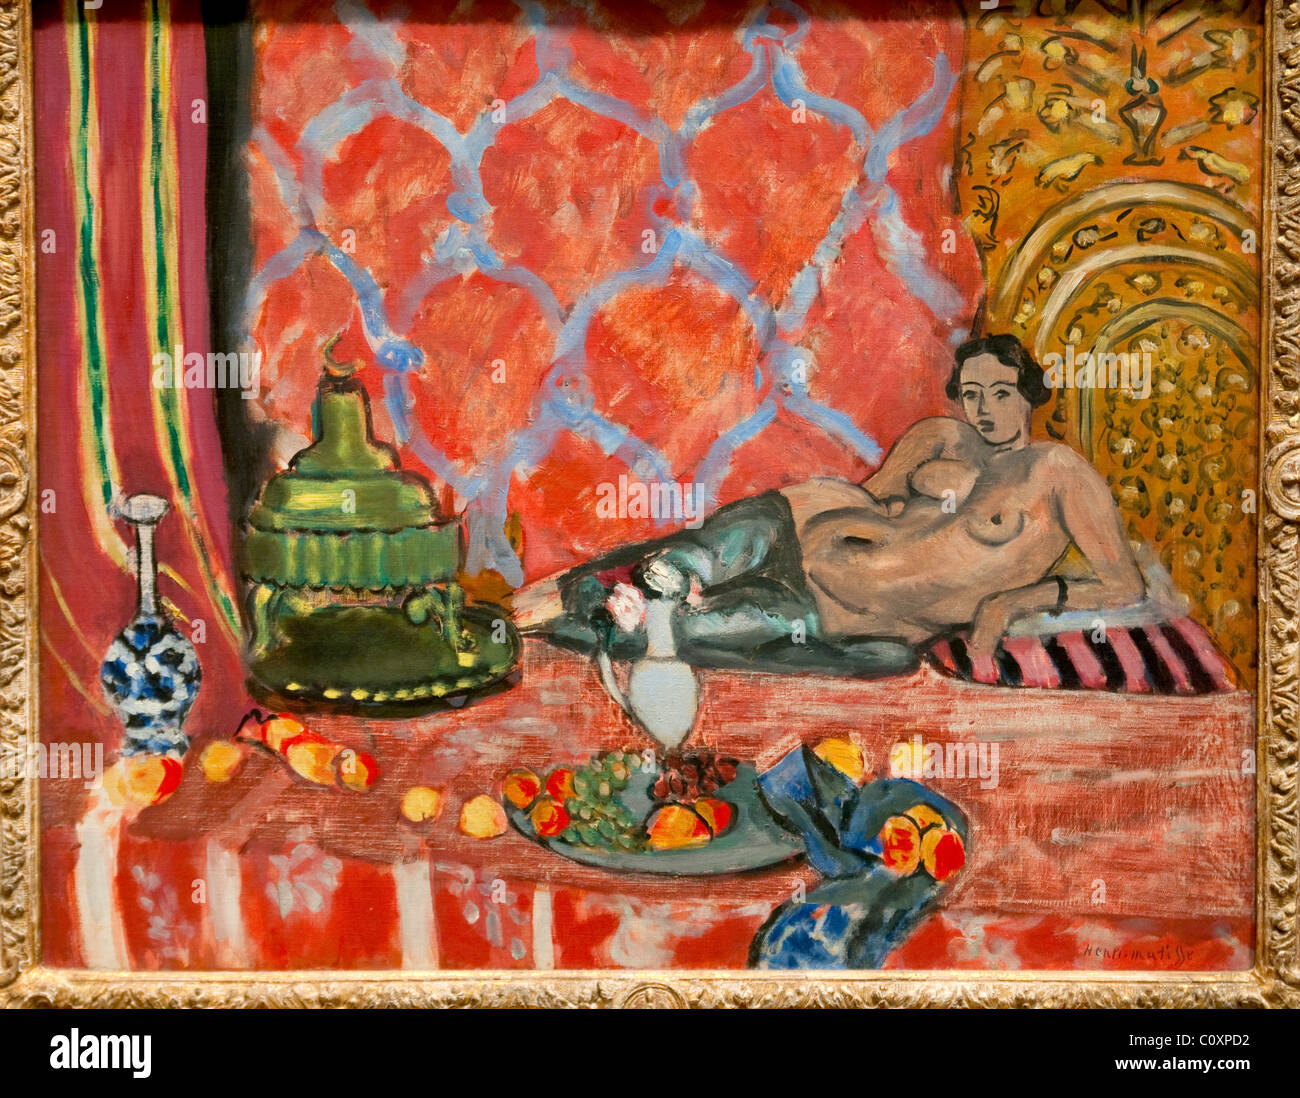 henri matisse painting stockfotos henri matisse painting bilder seite 3 alamy. Black Bedroom Furniture Sets. Home Design Ideas